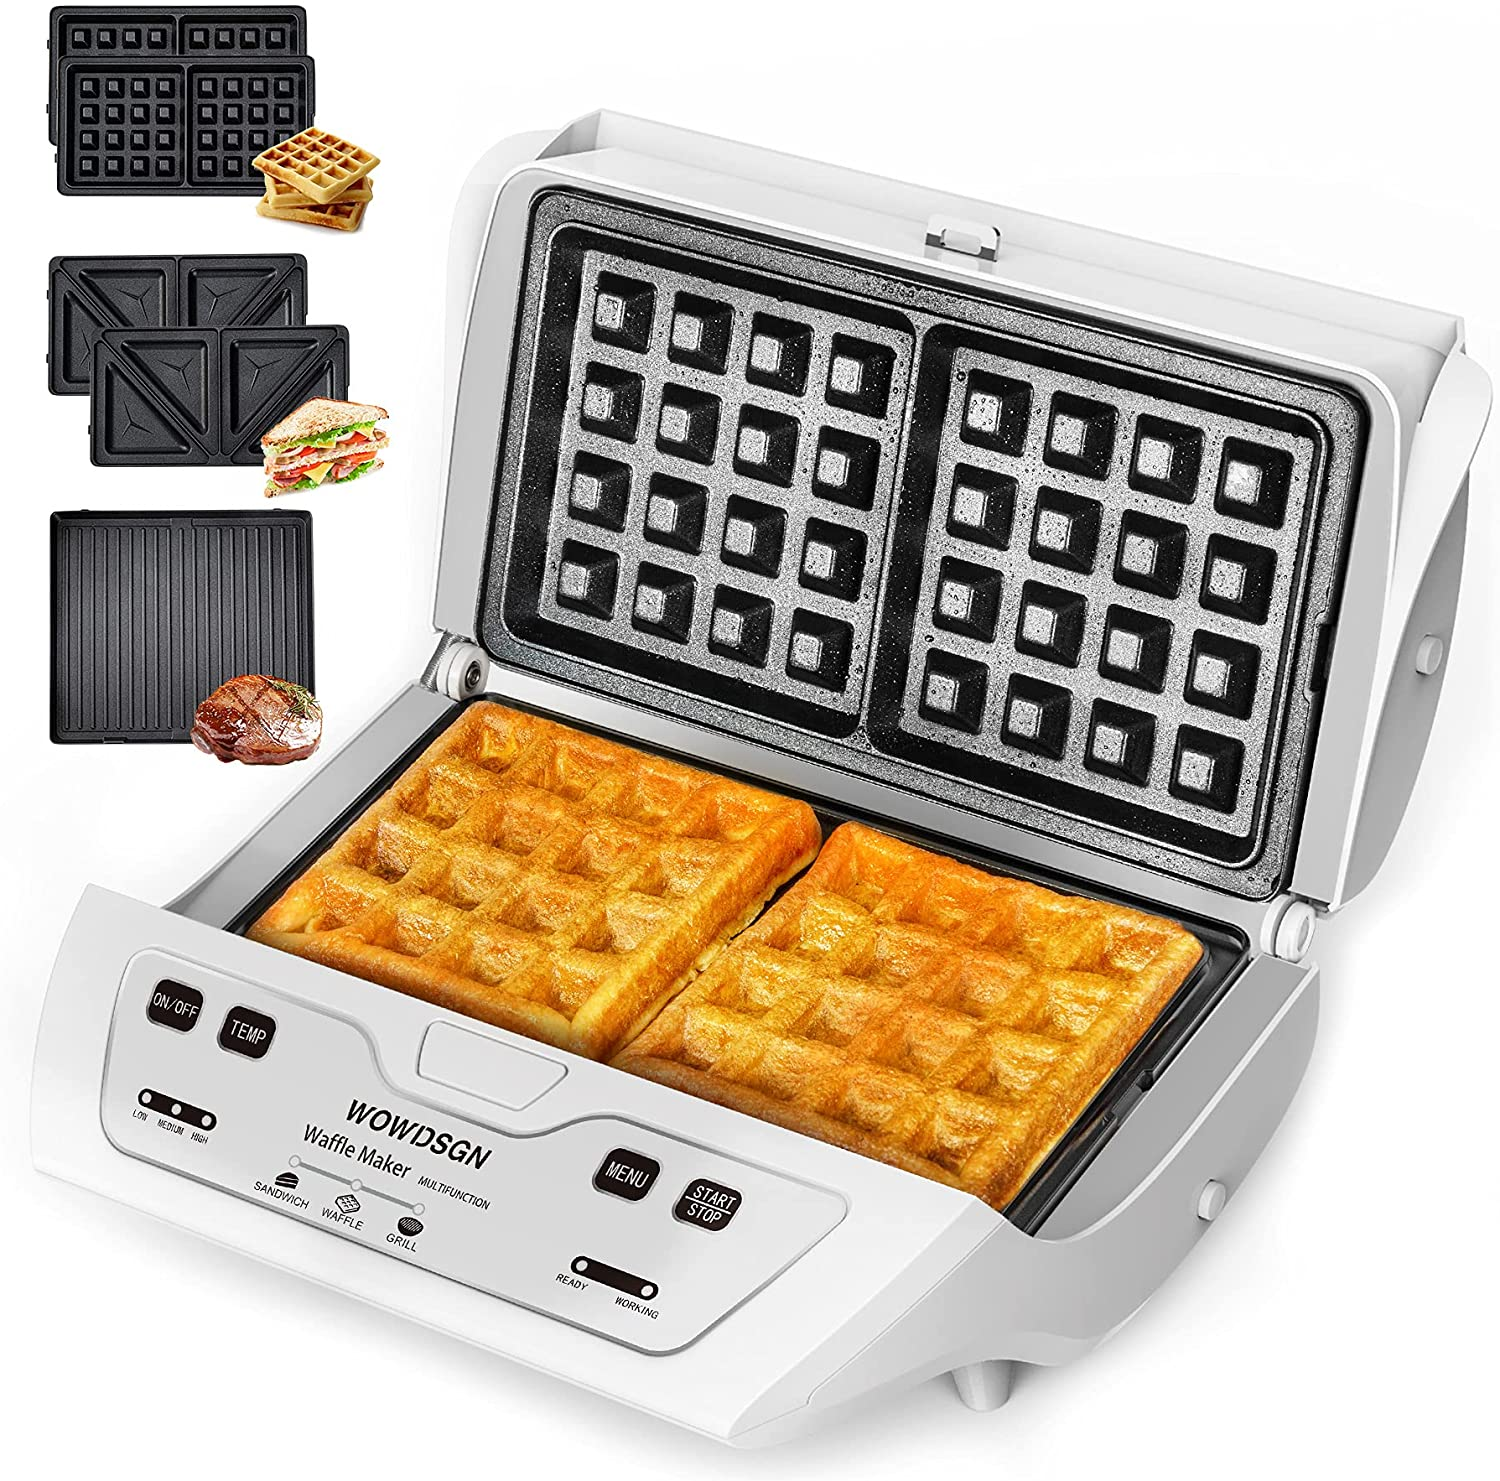 Waffle Maker -2021 Newest WOWDSGN Sandwich Maker,Toaster and Panini Press Grill with 3-in-1 Detachable Non-stick Large Plates,High,Middle Low temperature automatic control,Easy to Clean,Touch button